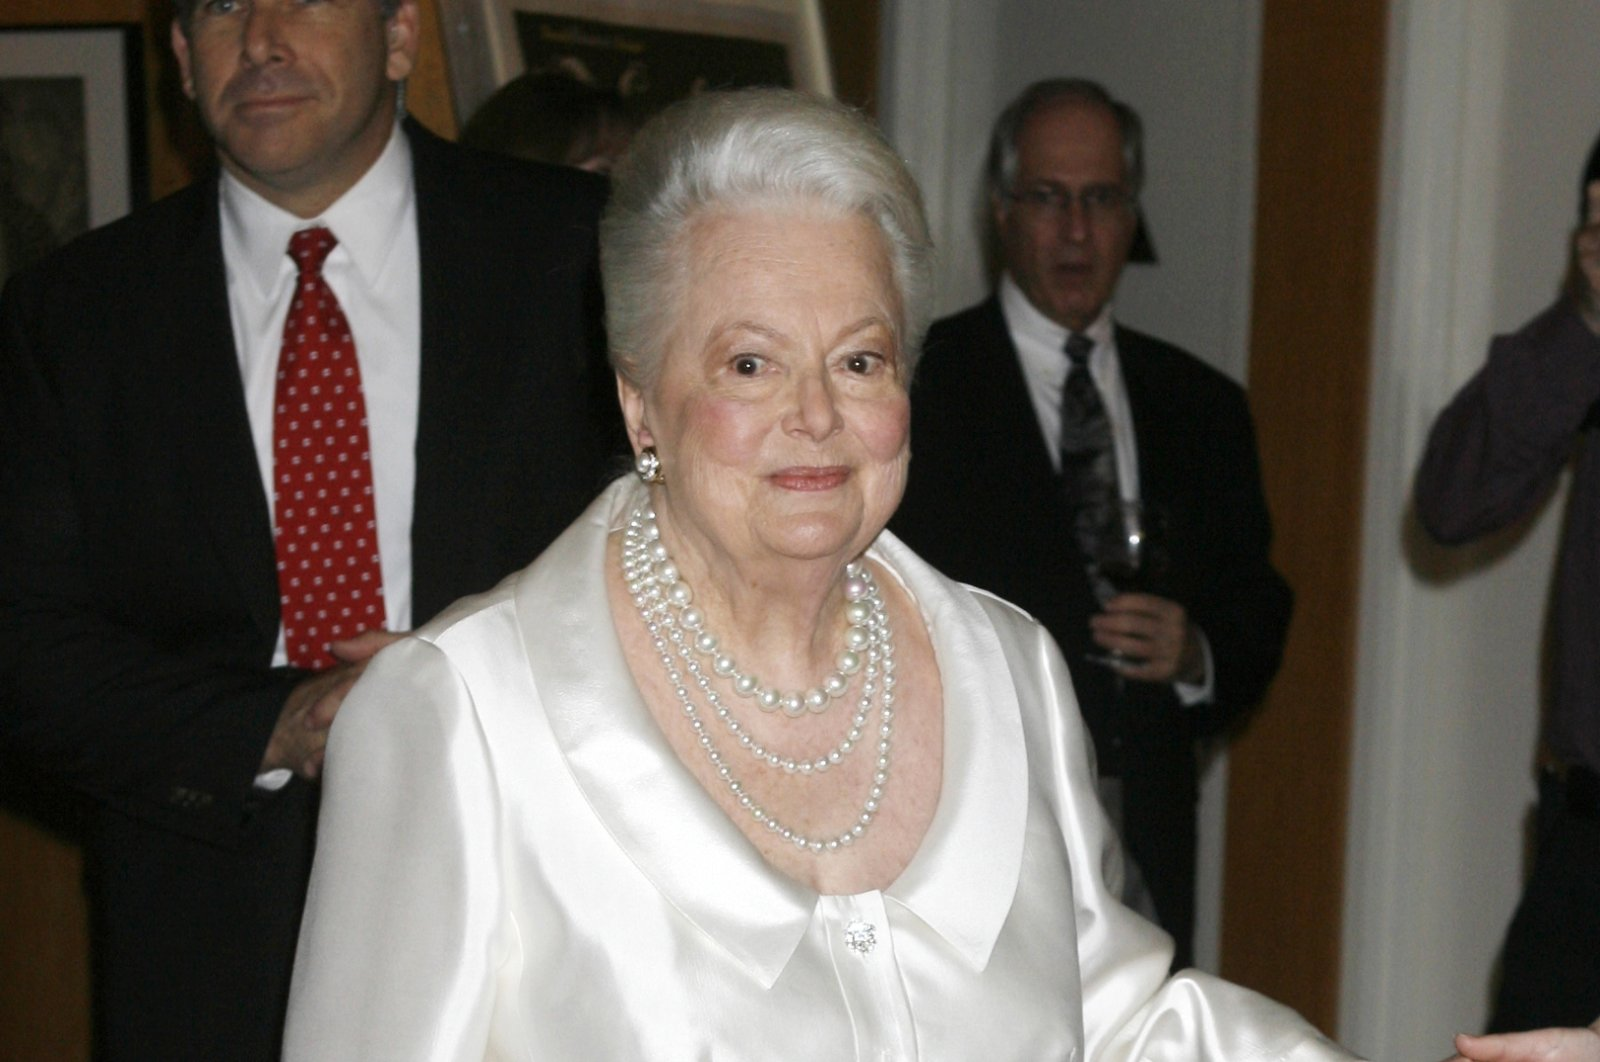 """Actress Olivia de Havilland, two-time Academy Award winner, arrives for the """"Academy Tribute to Olivia de Havilland"""" at the Academy of Motion Picture Arts & Sciences, Beverly Hills, California, U.S., June 15, 2006. (Reuters File Photo)"""